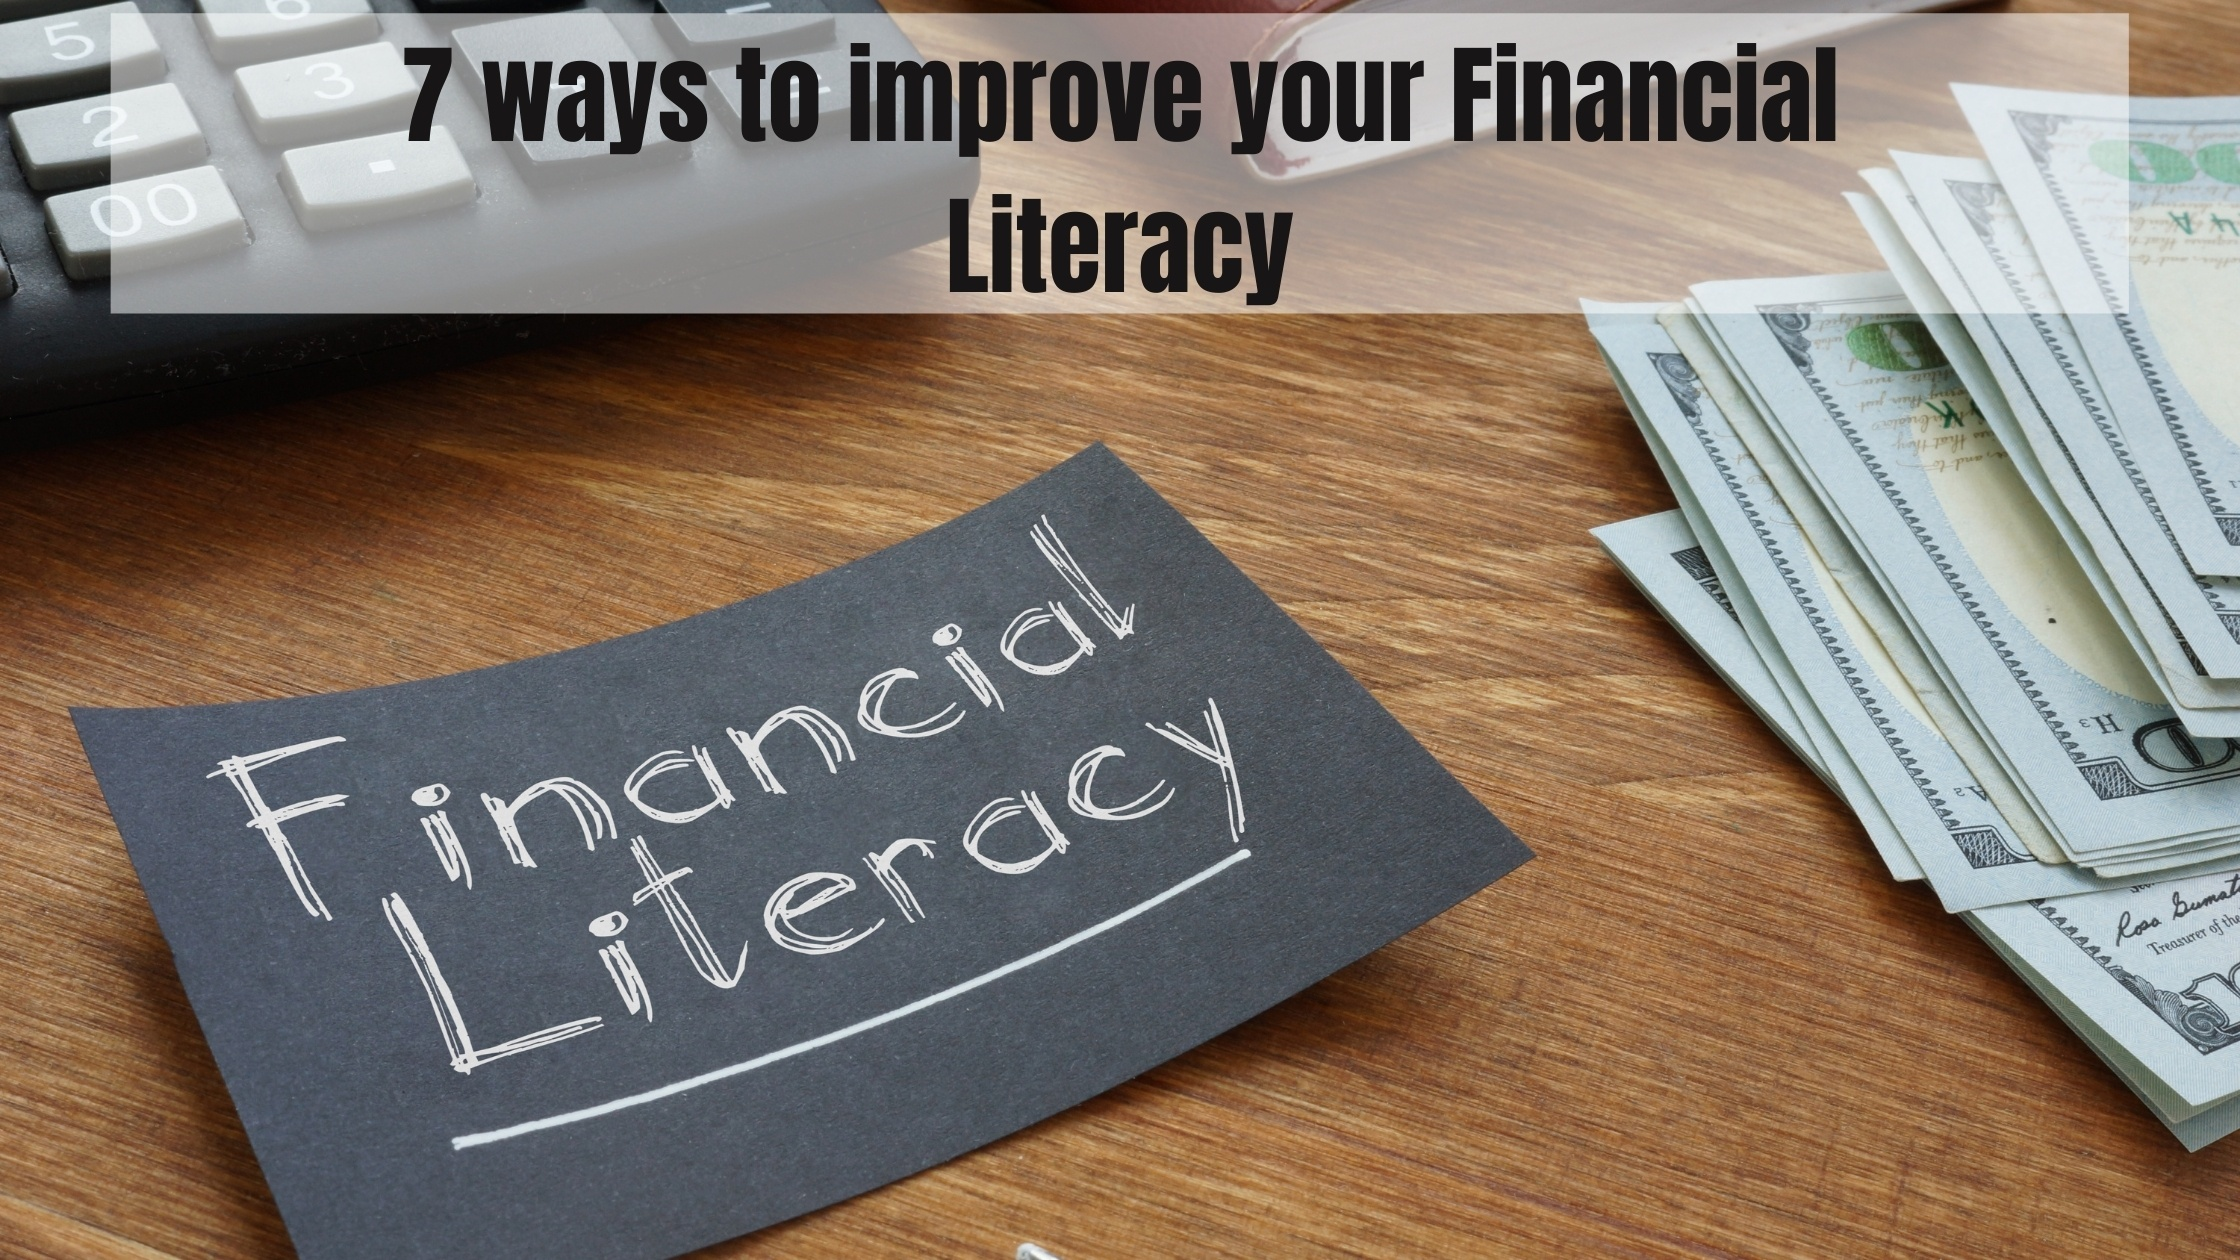 Financial Literacy is one of the most crucial things in any adult's life. Being financially literate means having the skills and knowledge to save, invest and manage your money.